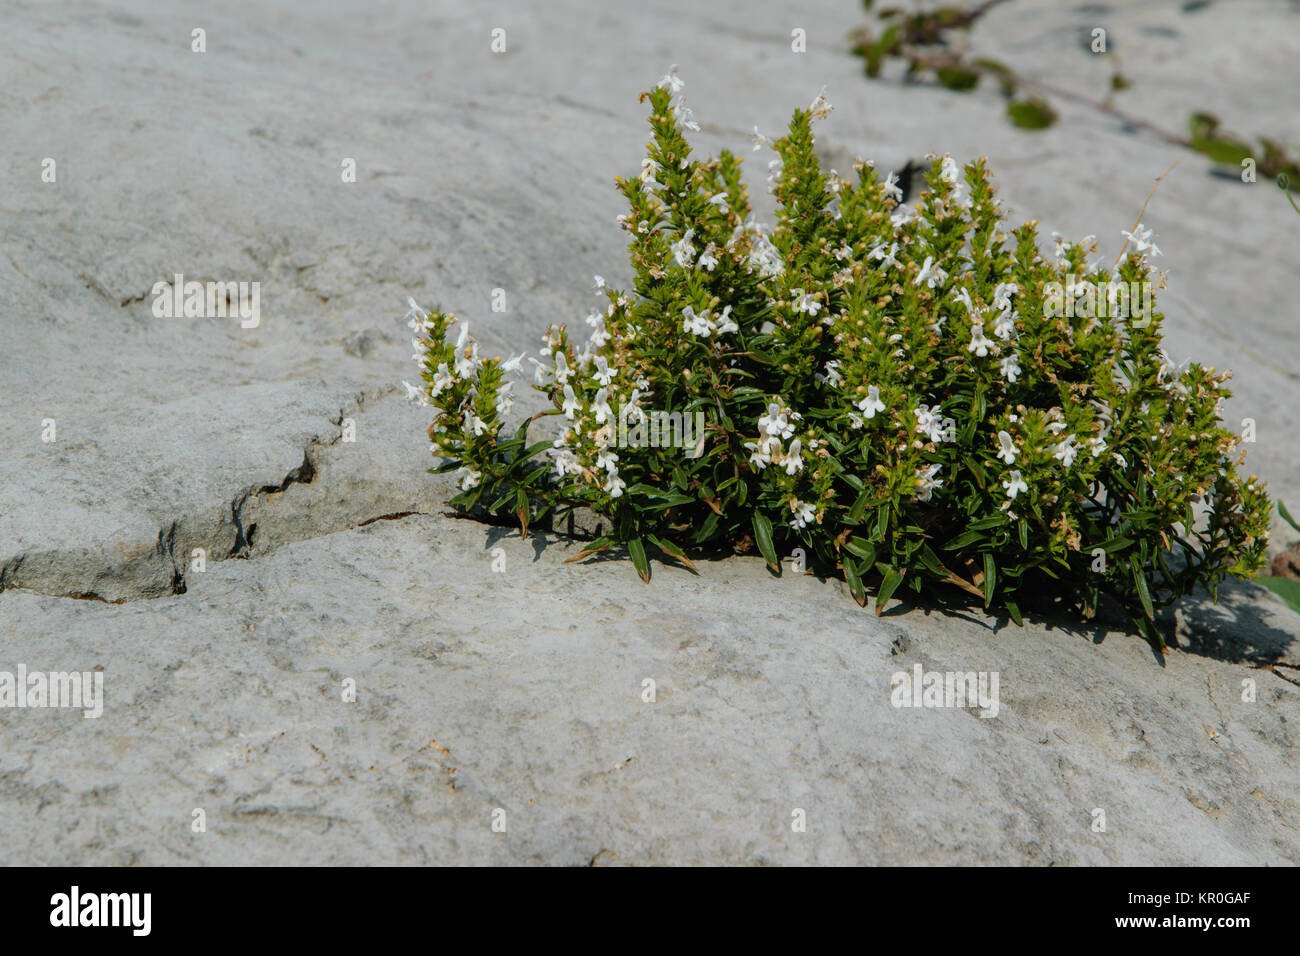 The power of nature - a wild plant that grows in the rock - Stock Image